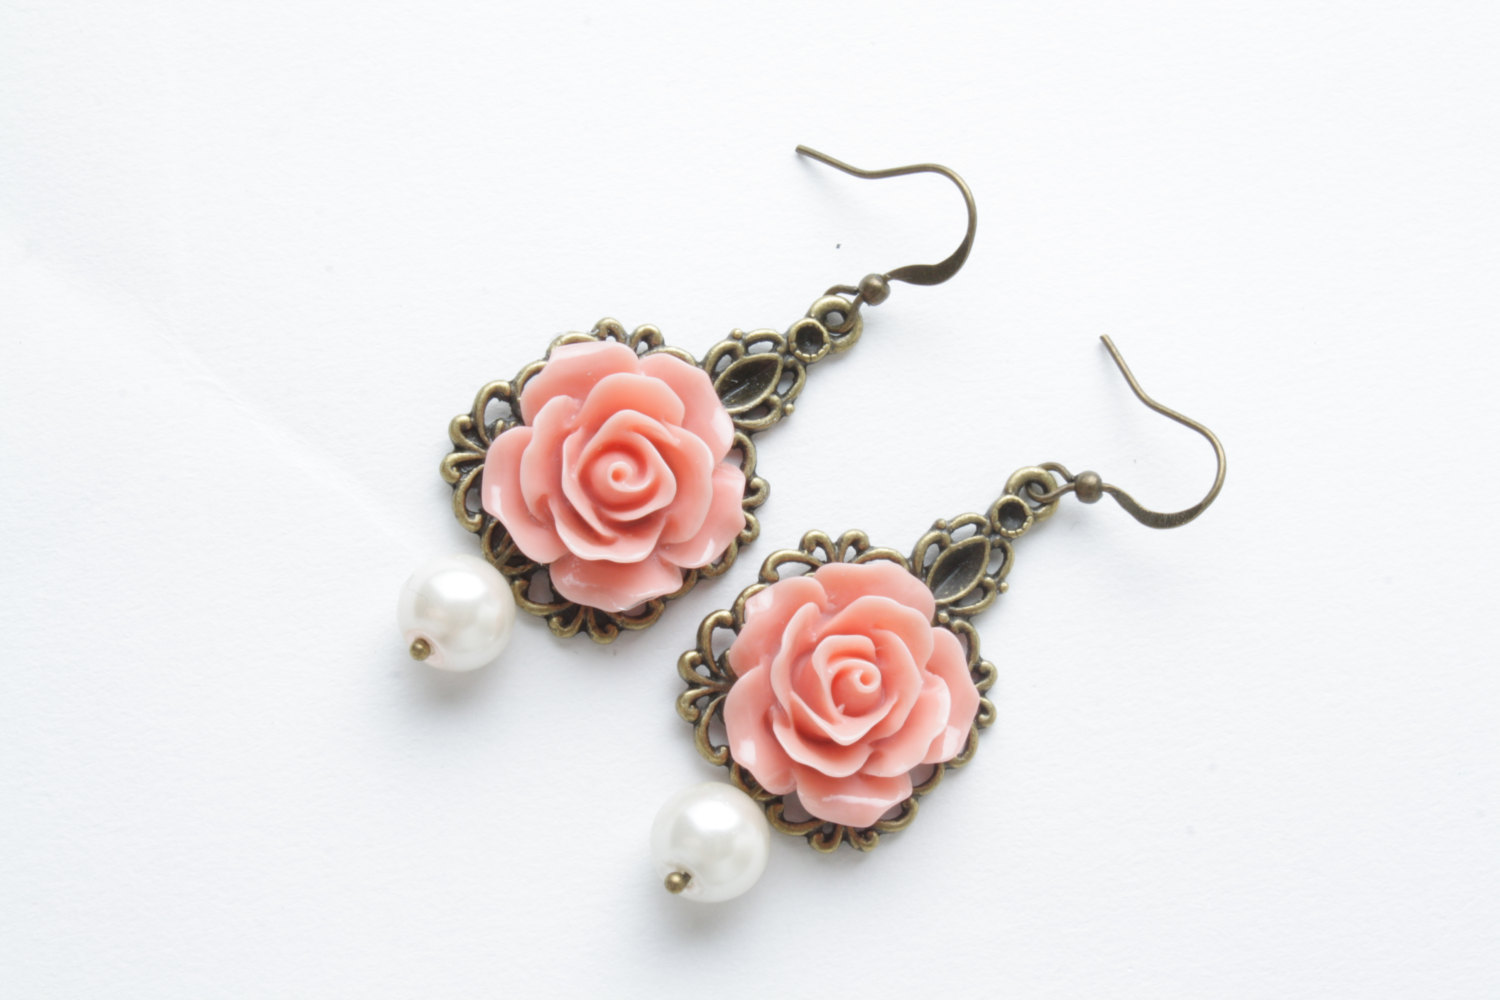 Rose earrings - vintage style earrings - Salmon roses and pearl - shabby  chic earrings - flower dangles - salmon jewelry d6b60f836a